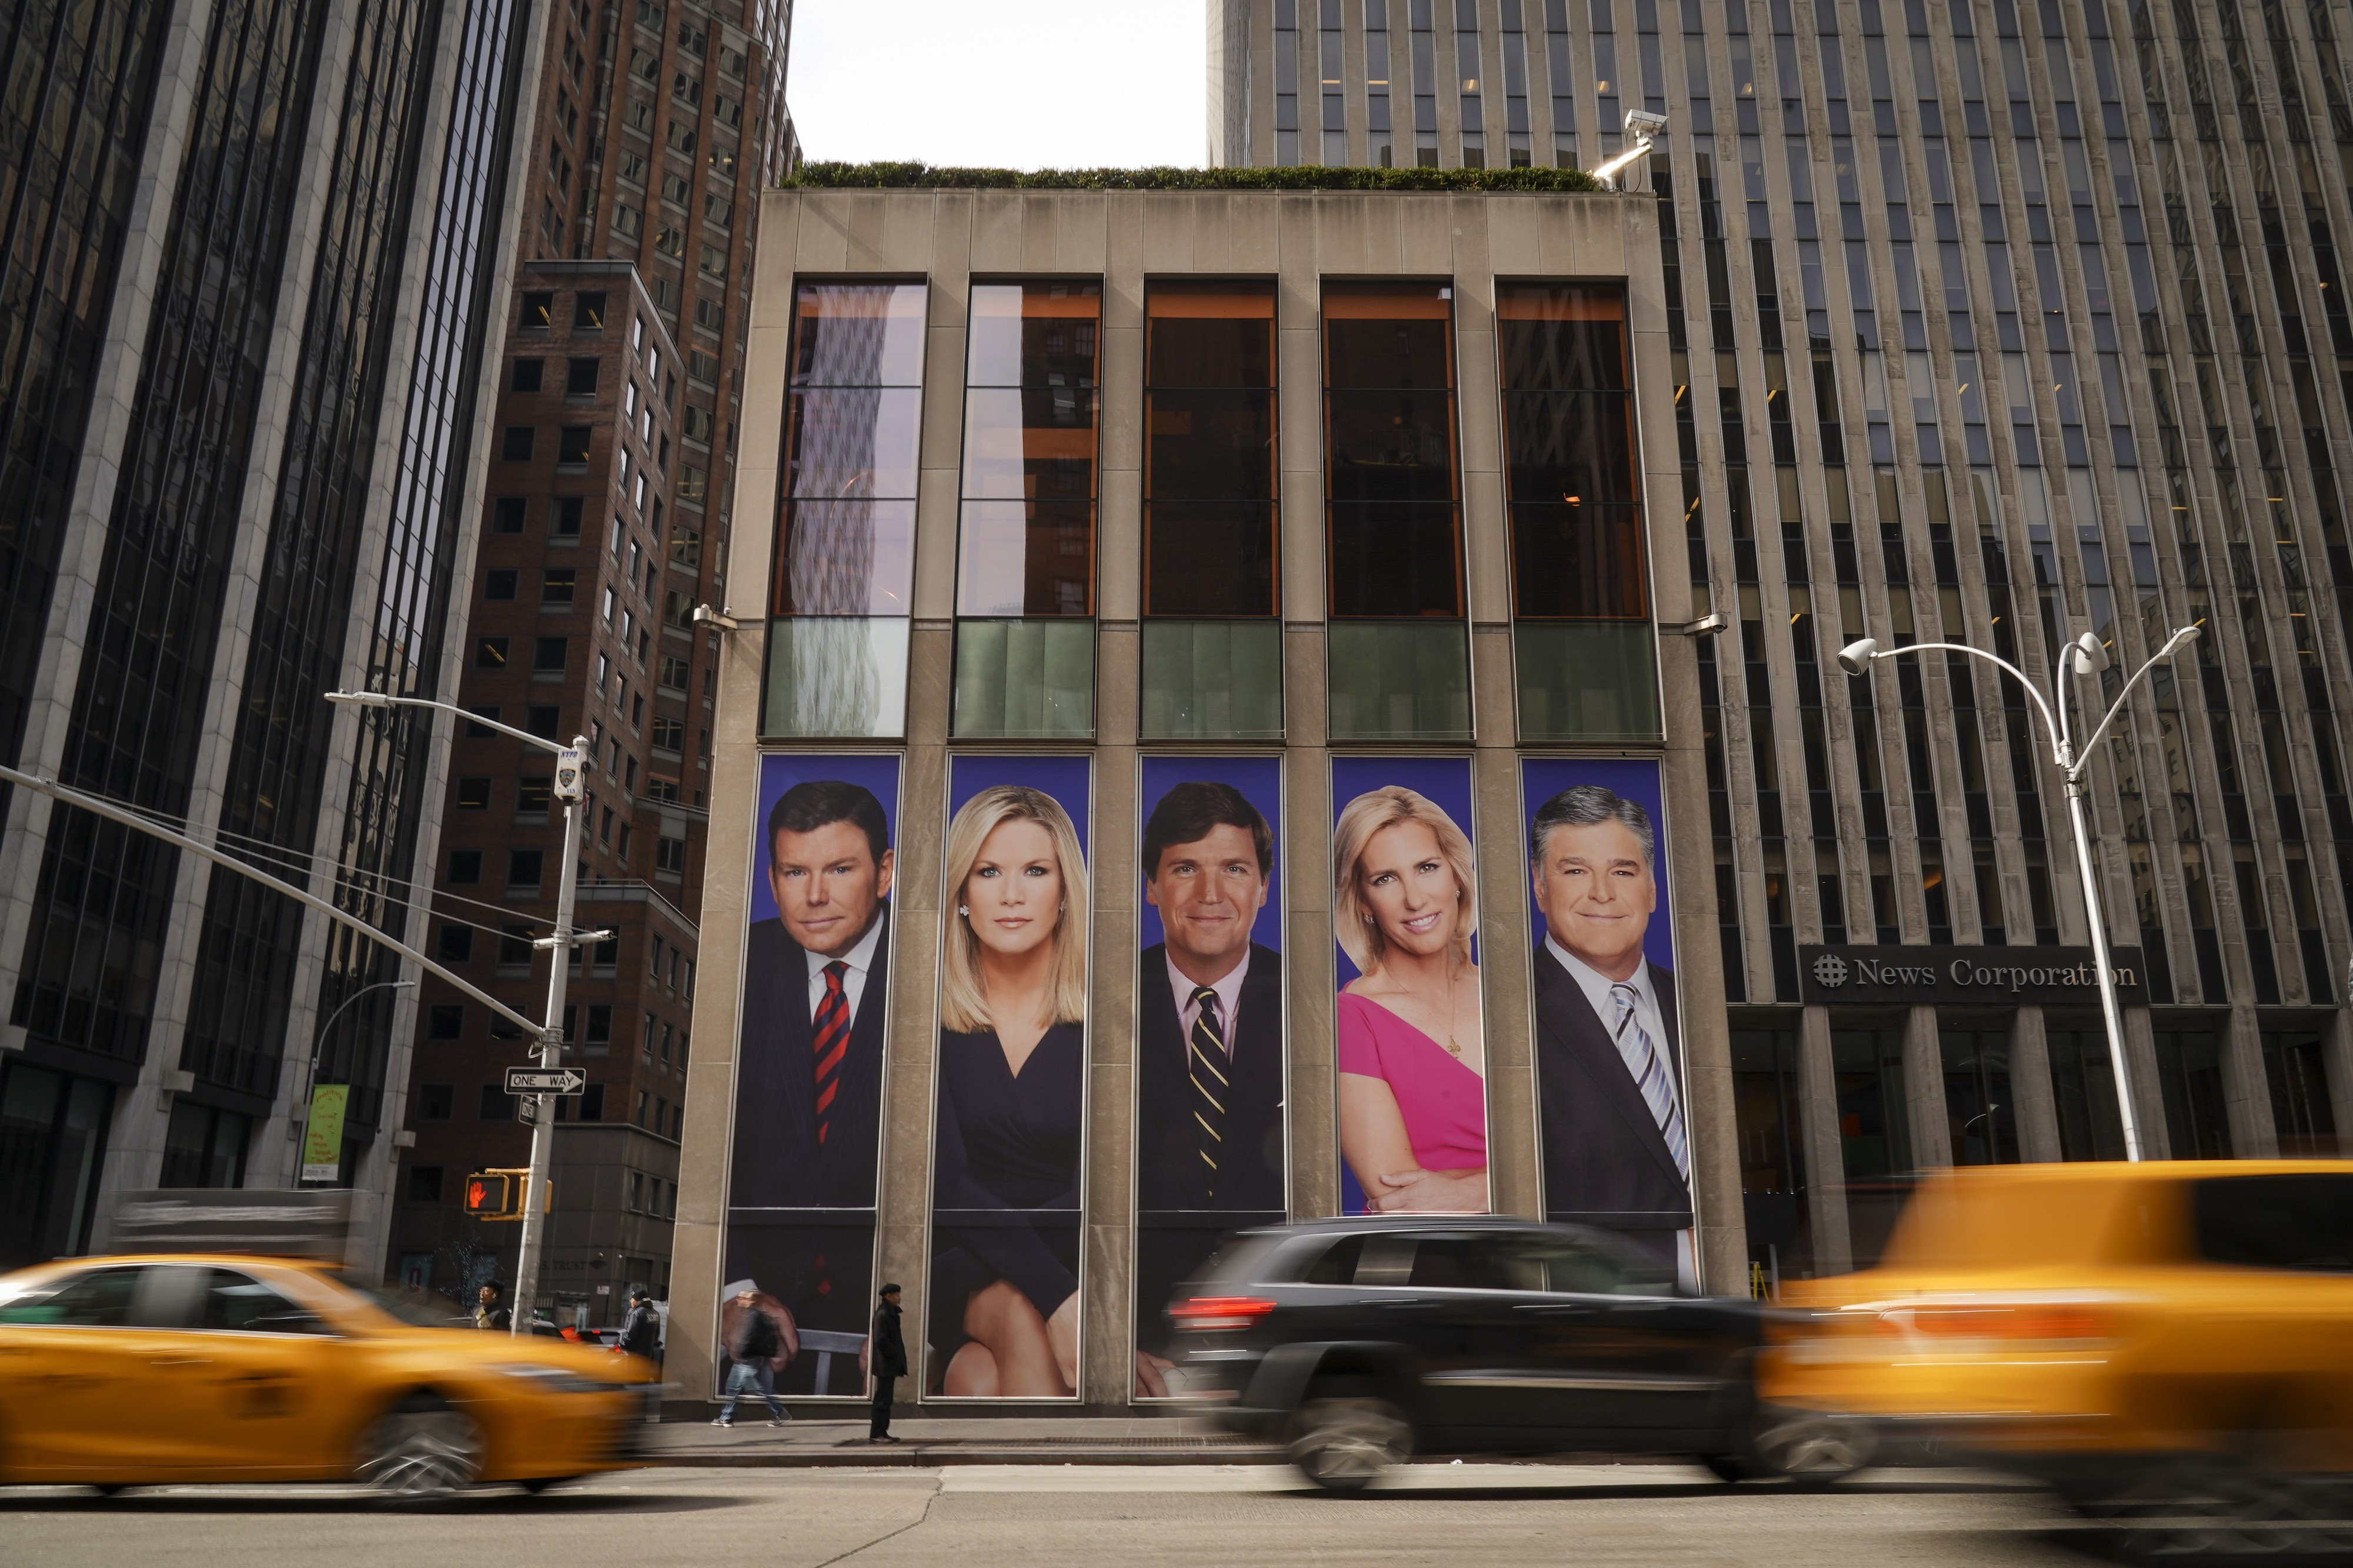 Bret Baier, Martha MacCallum, Tucker Carlson, Laura Ingraham, Sean Hannity as ads on the front of the News Corp building.